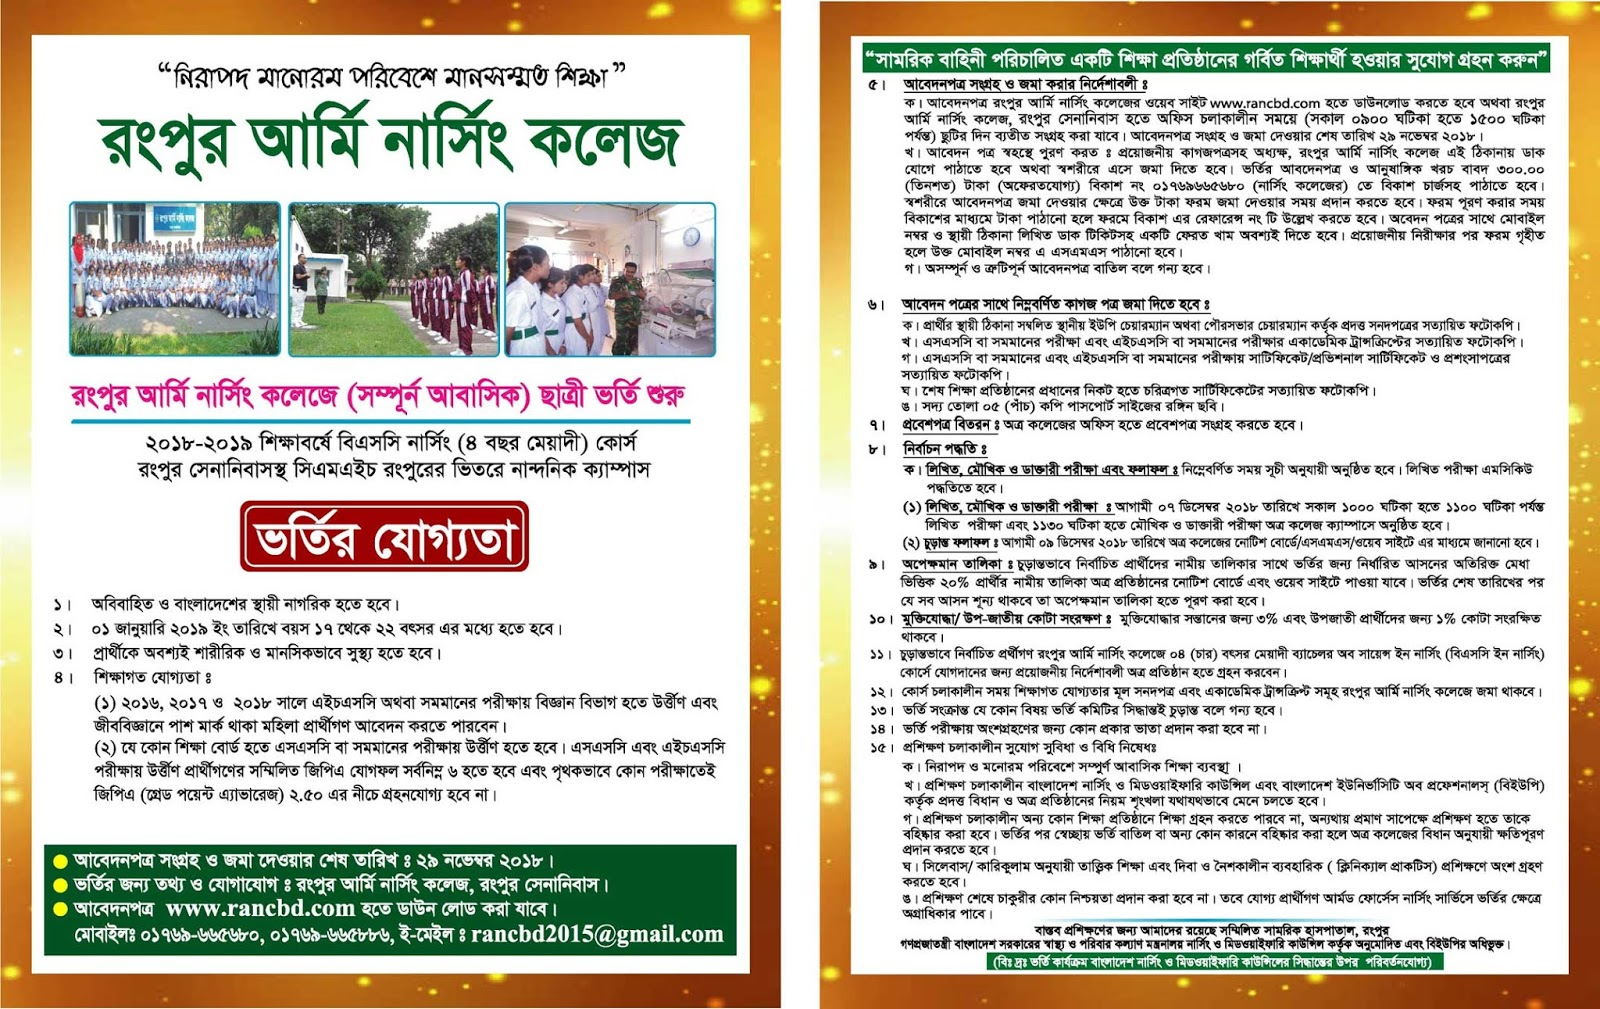 Rangpur Army Nursing College (RANC) B.Sc in Nursing Admission Circular 2018-2019